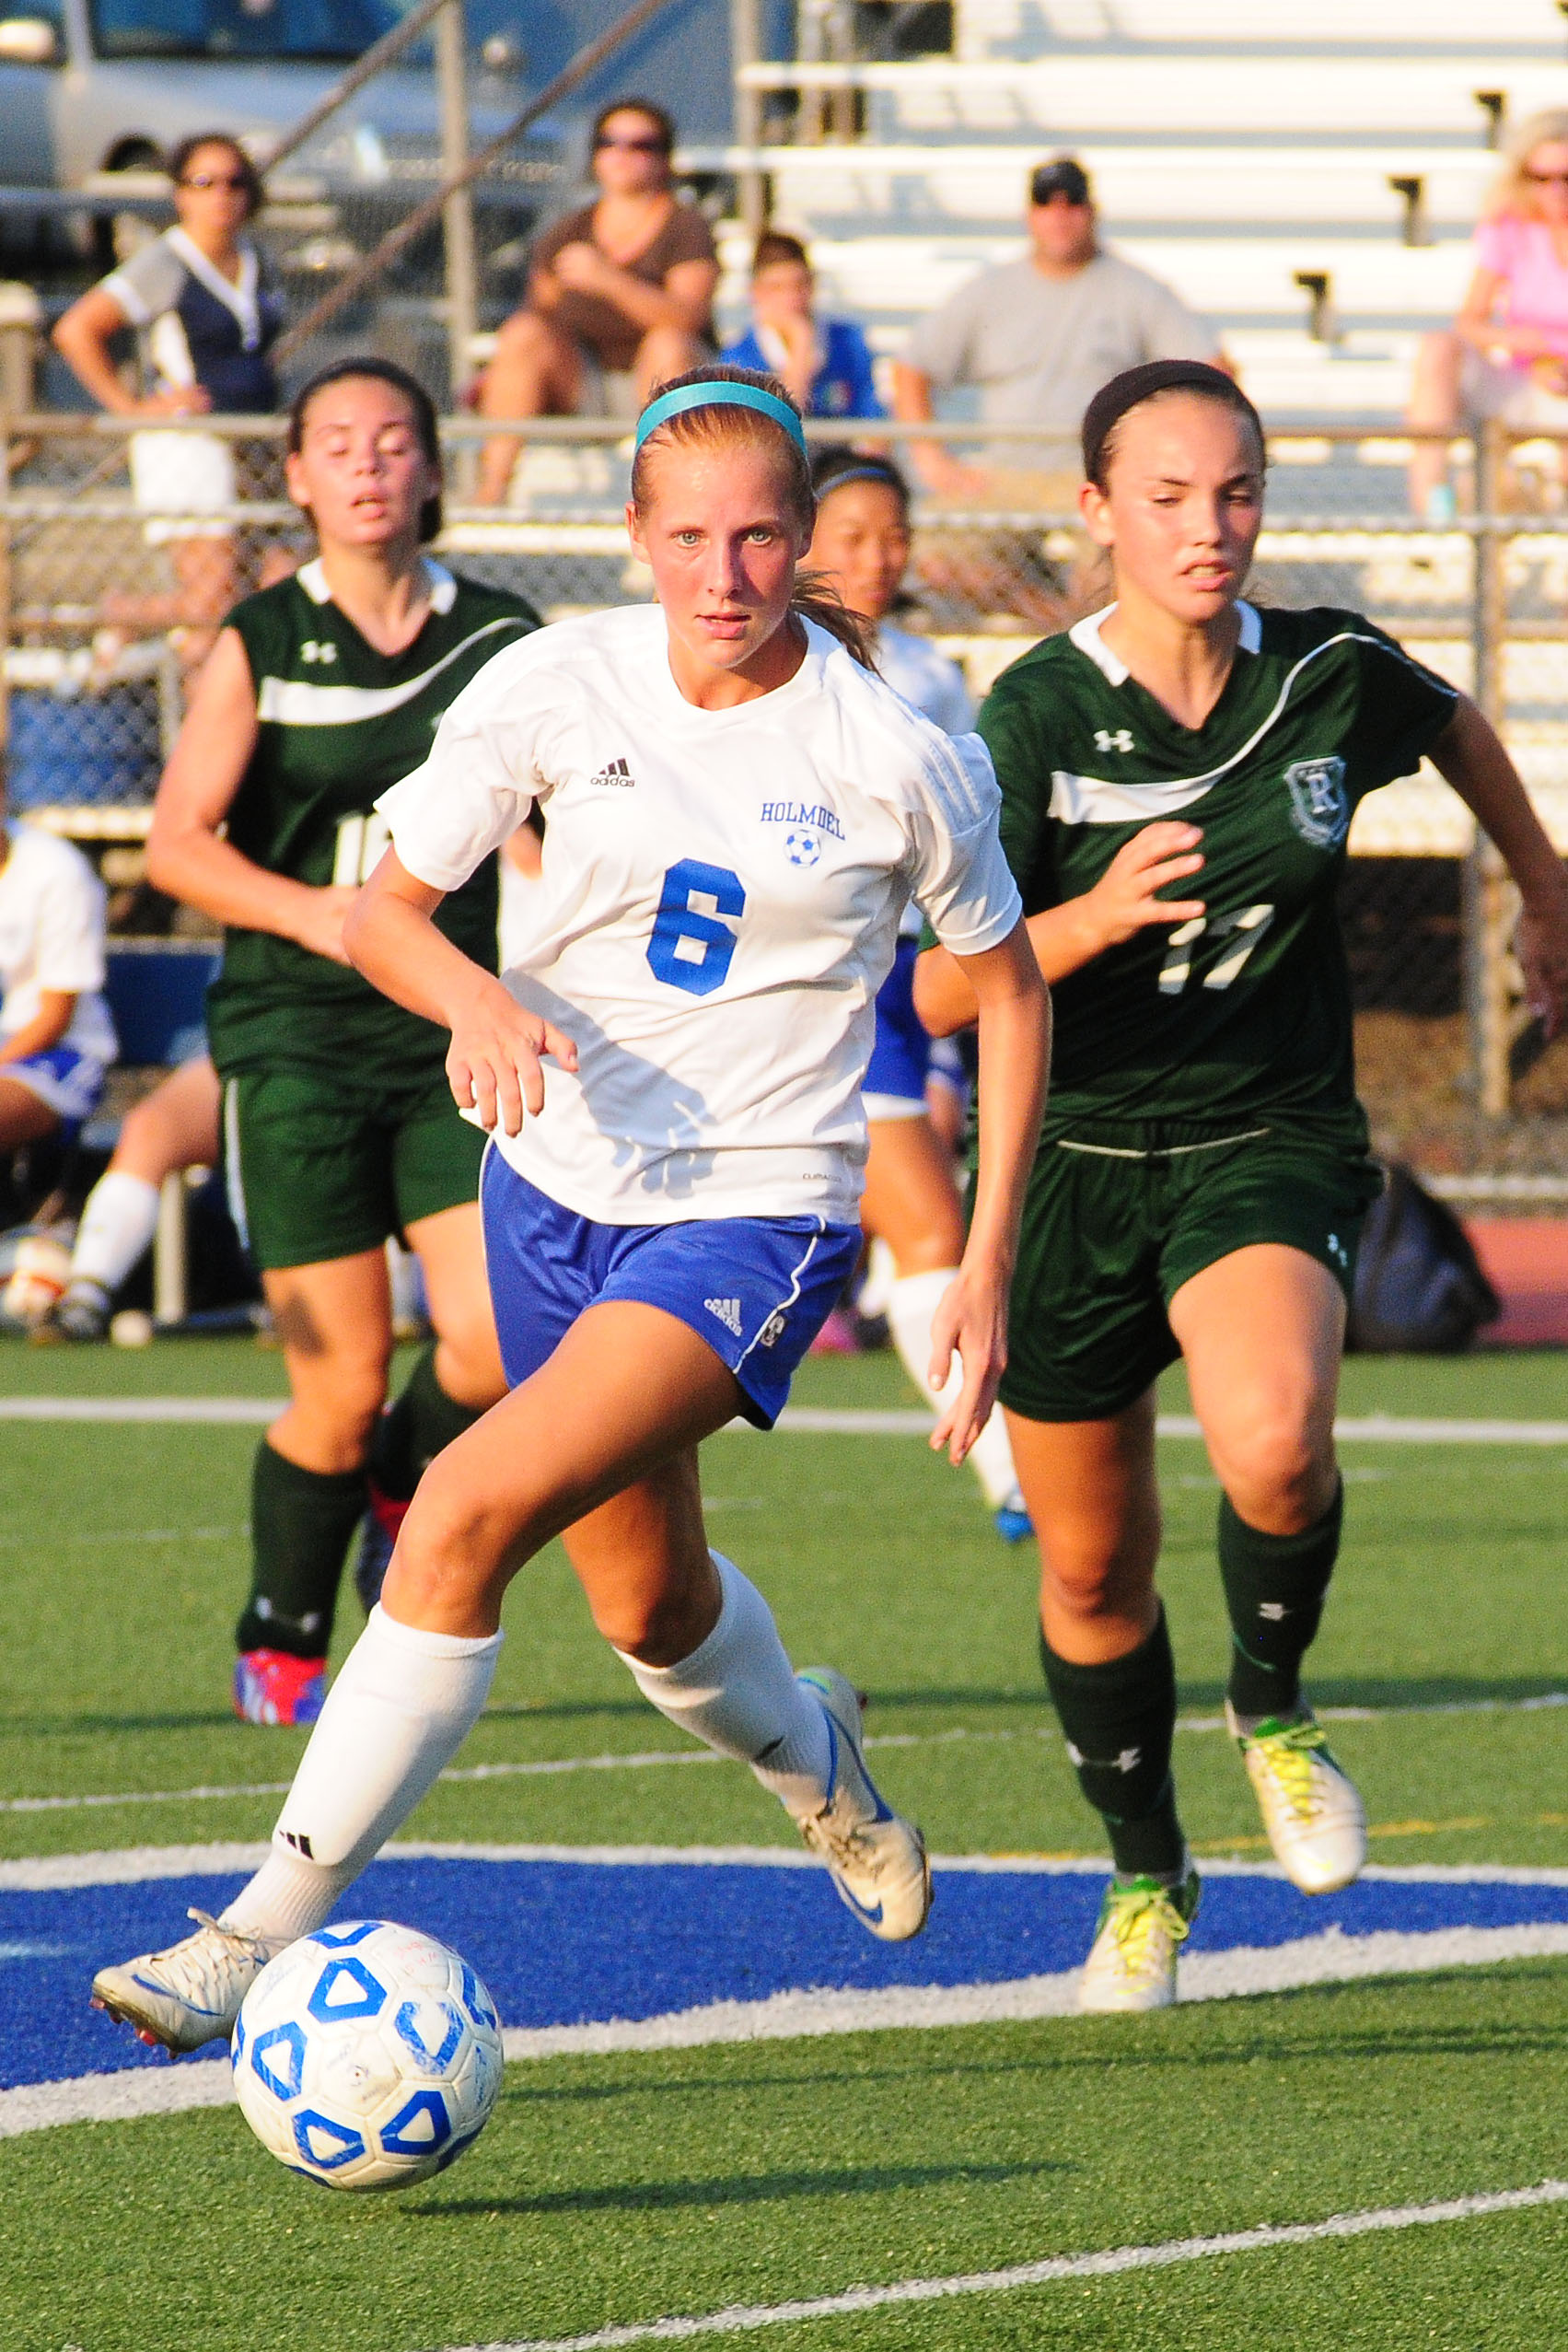 HOLMDEL GIRLS' SOCCER STARTS SEASON WITH PAIR OF WINS By Les Pierce